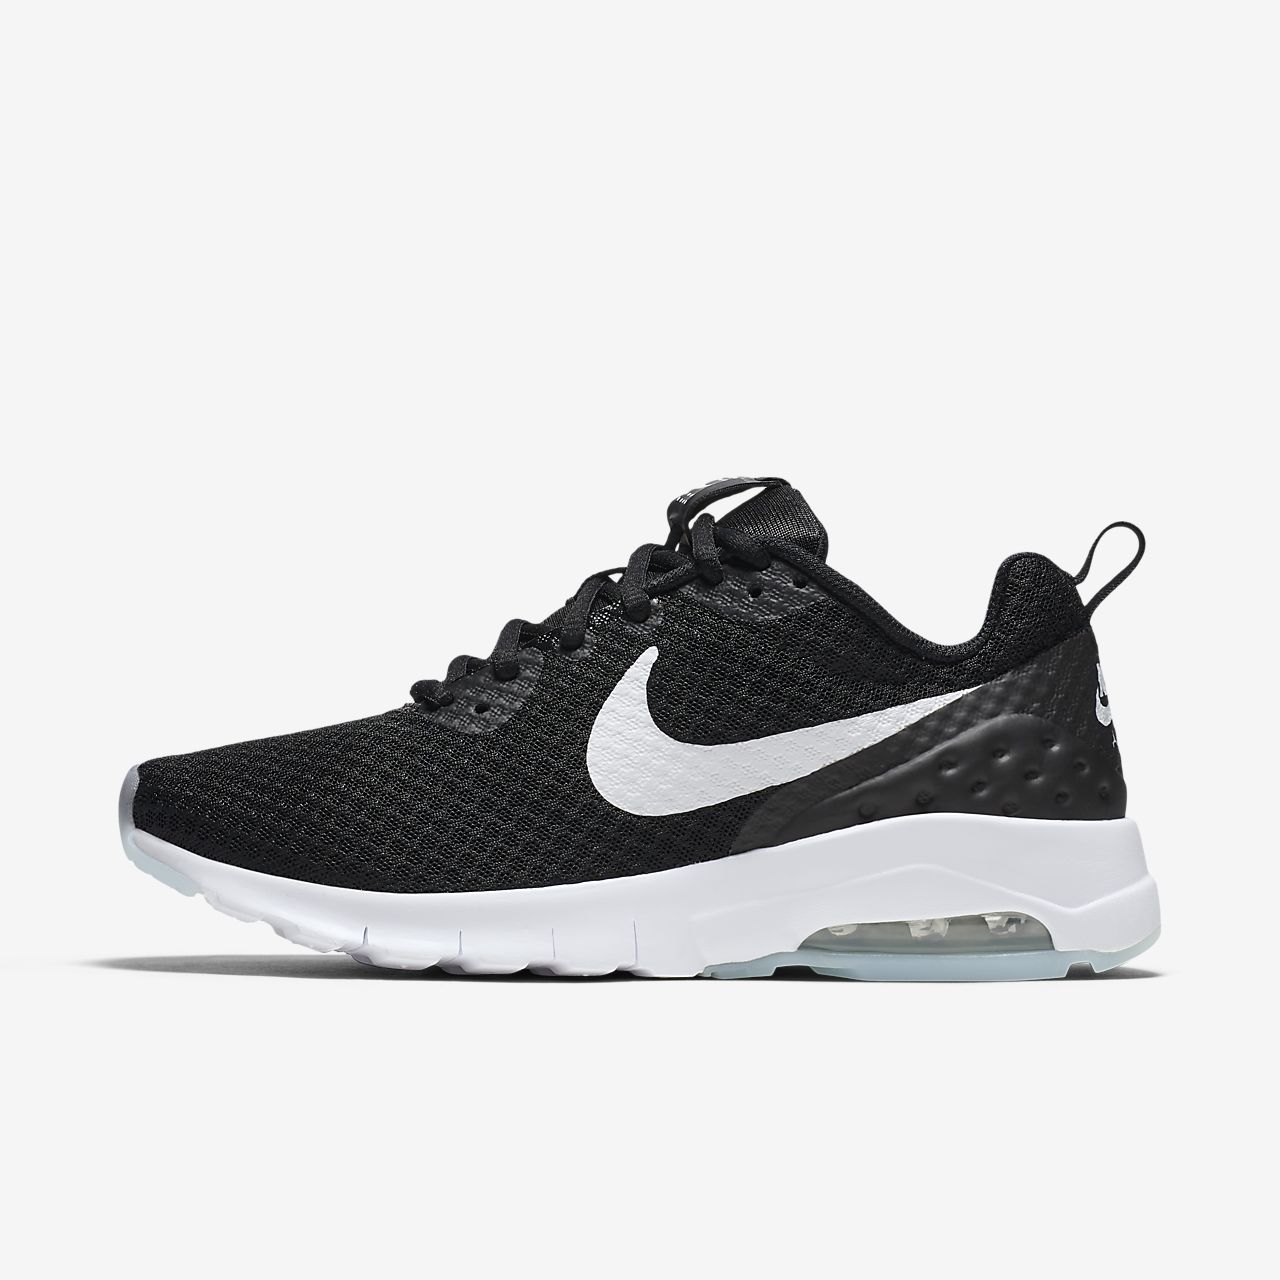 the best attitude 14431 0dd00 ... Chaussure Nike Air Max Motion Low pour Femme